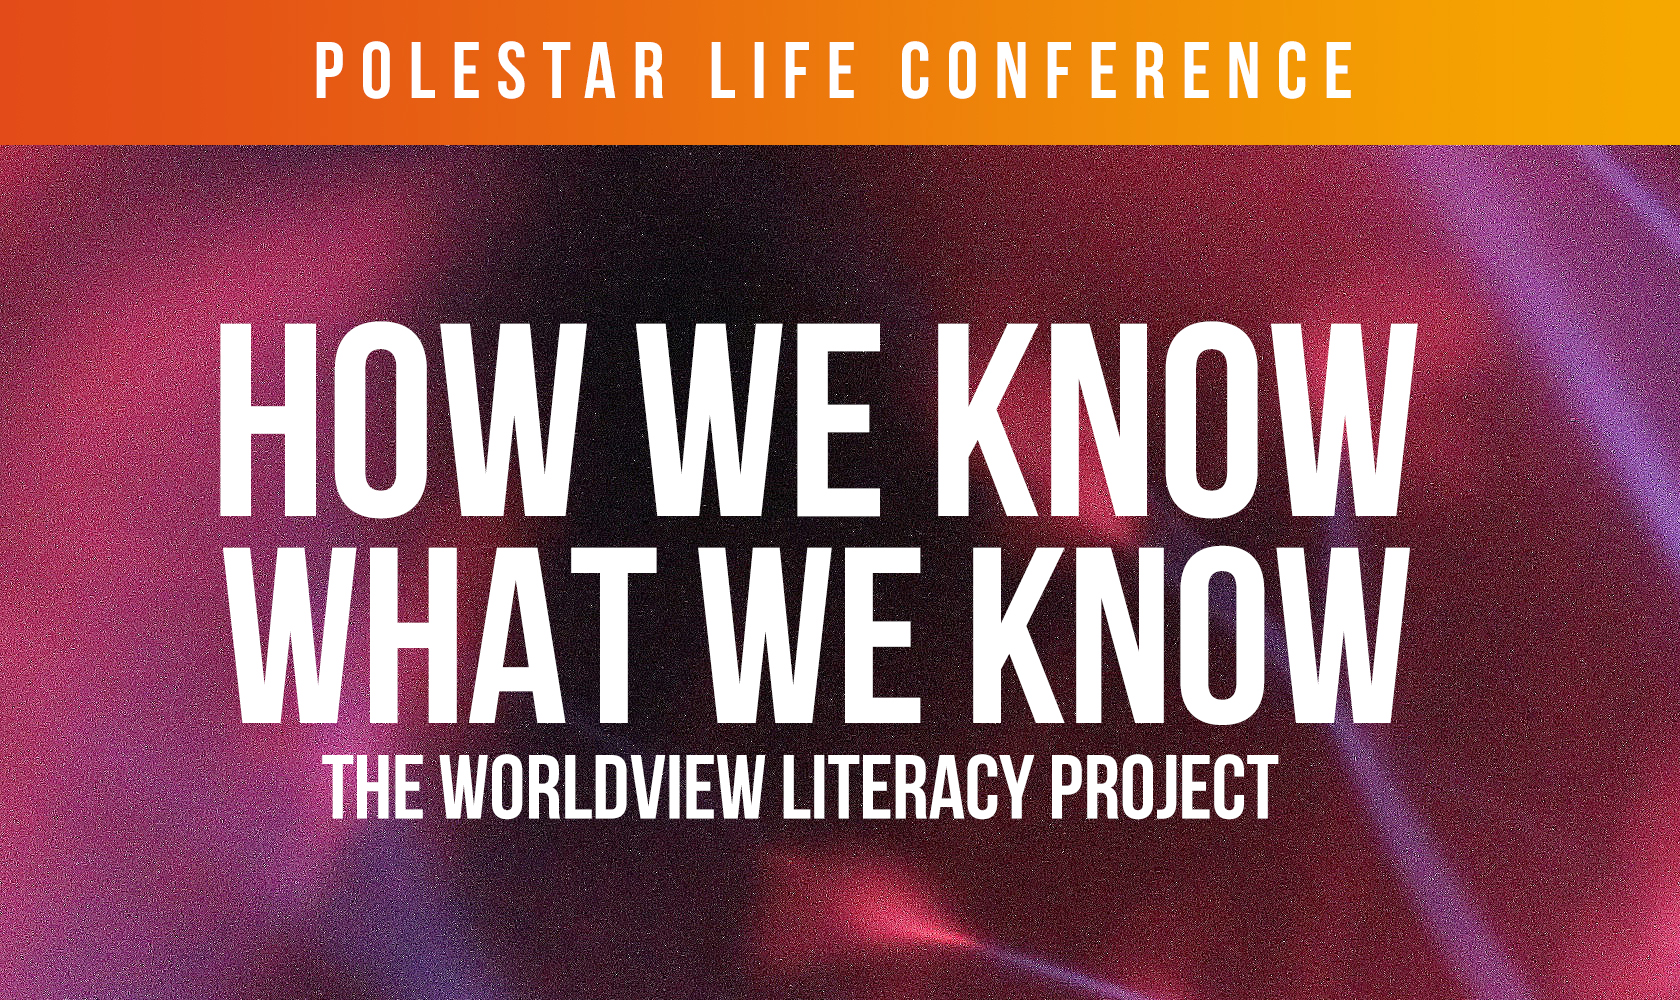 How Do We Know What We Know? (Polestar Life Conference)